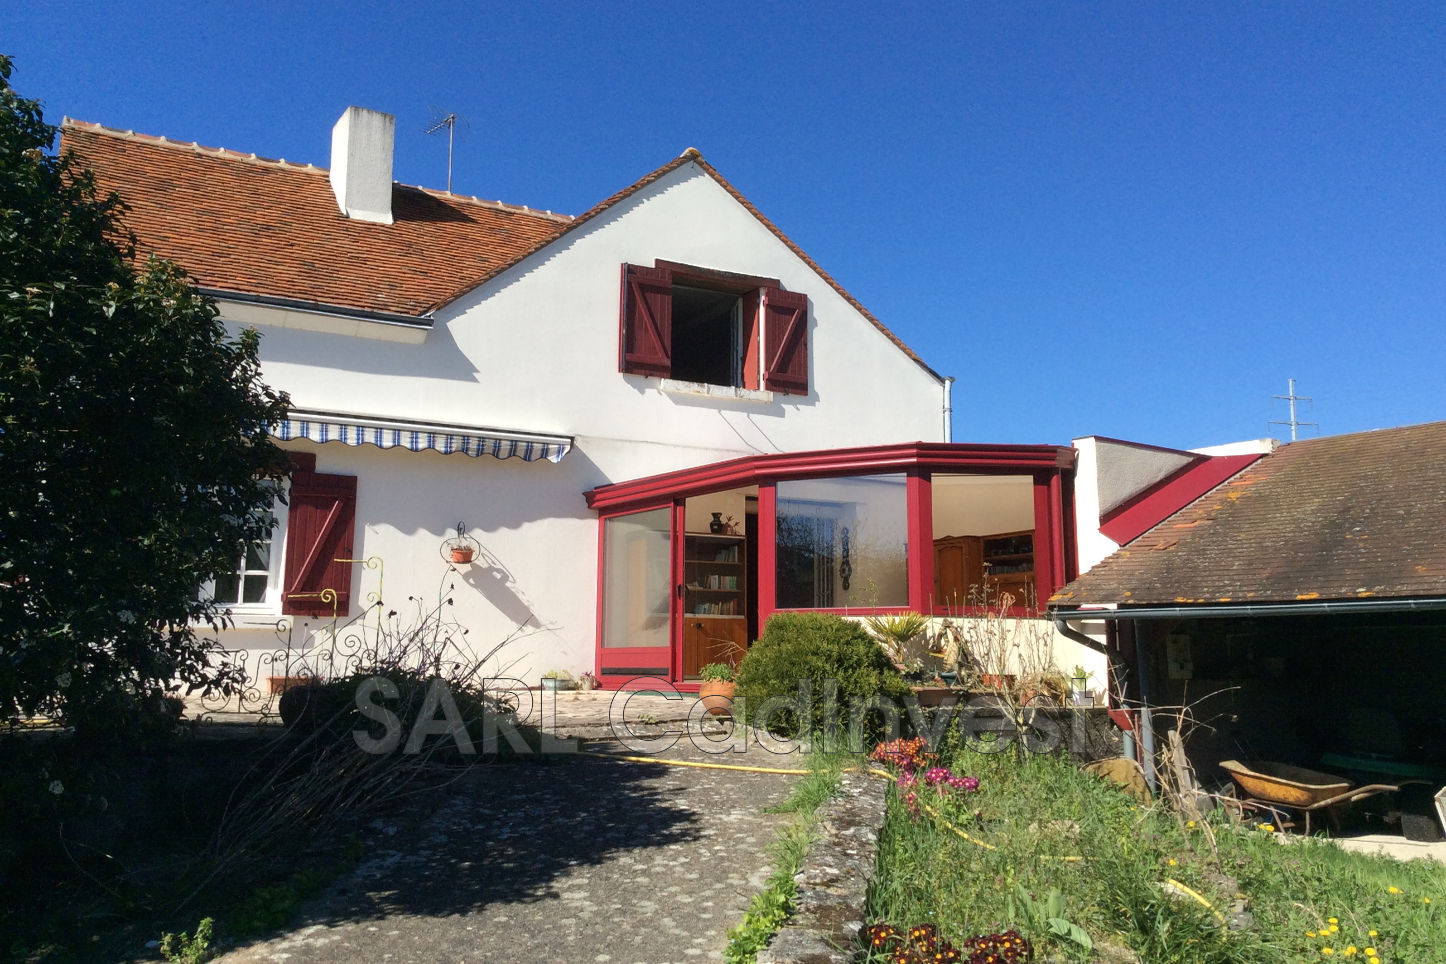 Nice For Sale Maison De Campagne Chambourg Sur Indre (37310) Ref. 623V97M